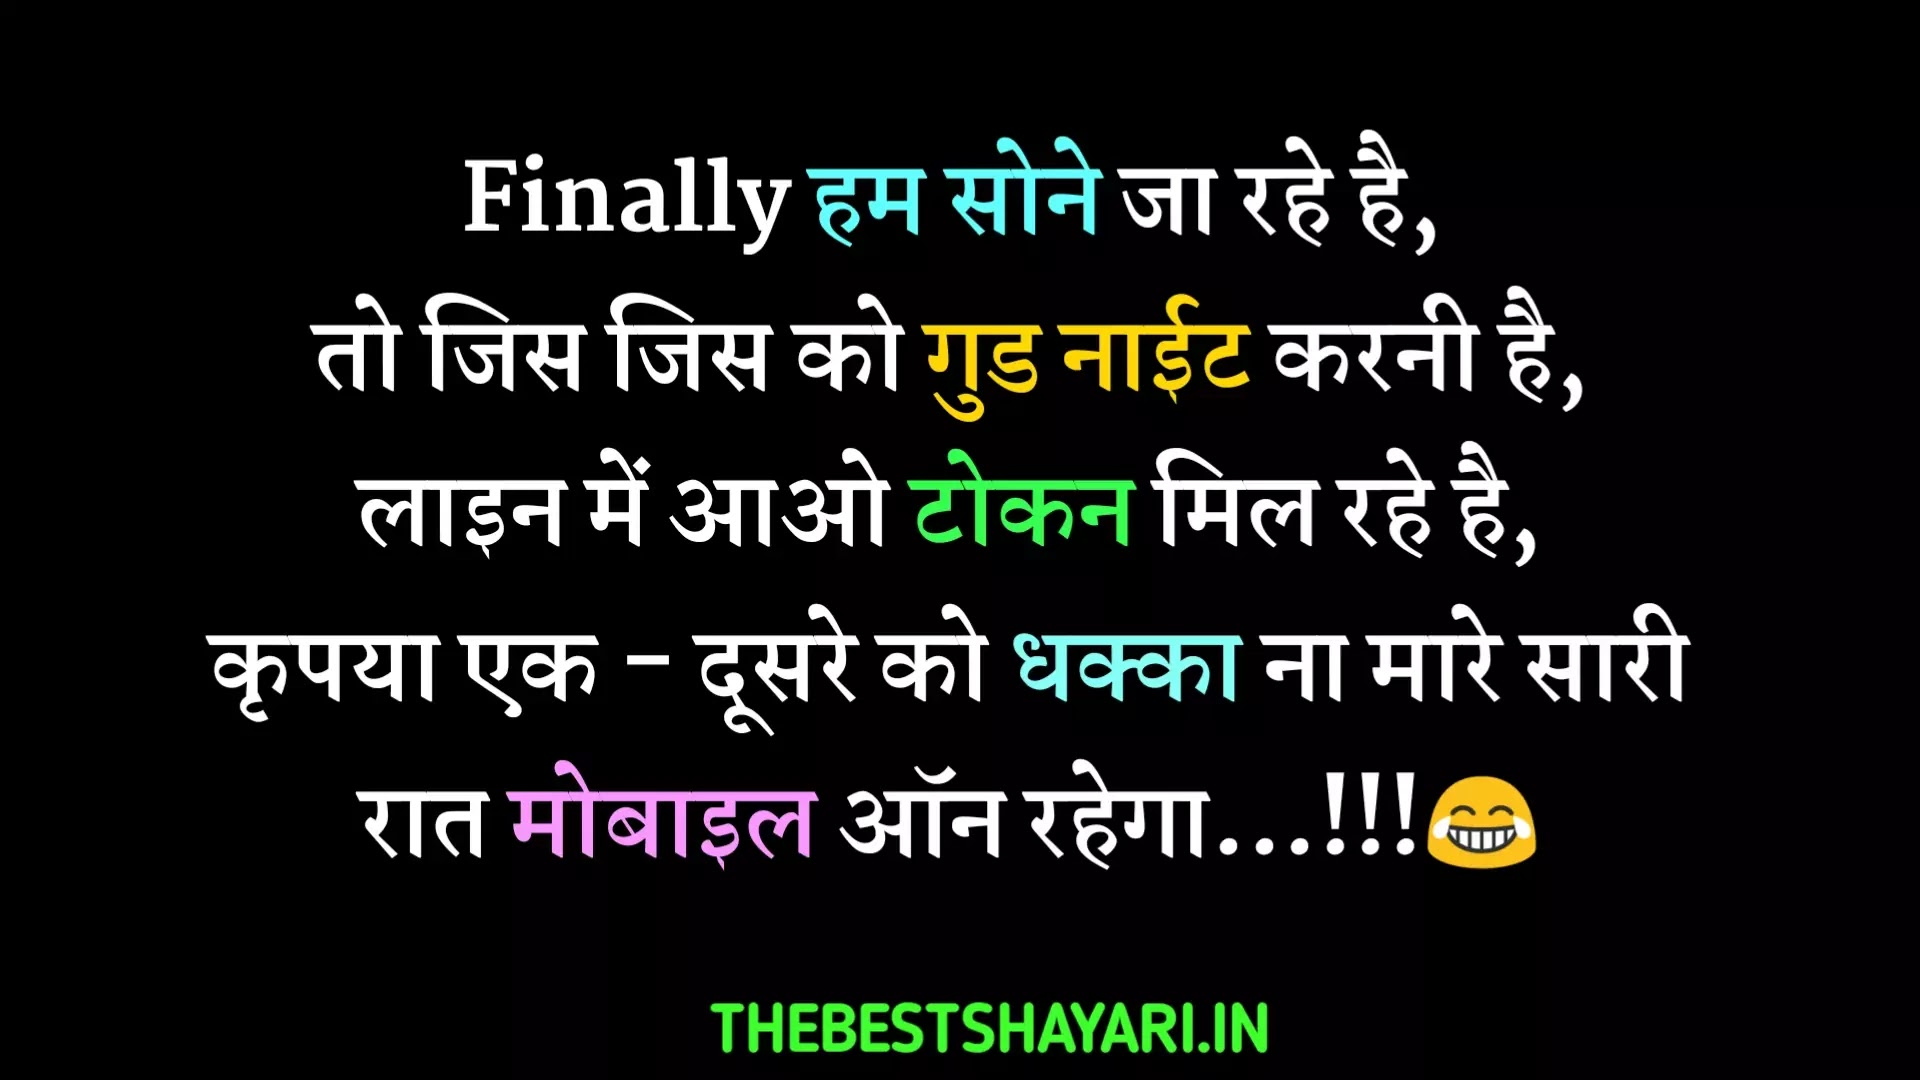 Funny good night message for friend